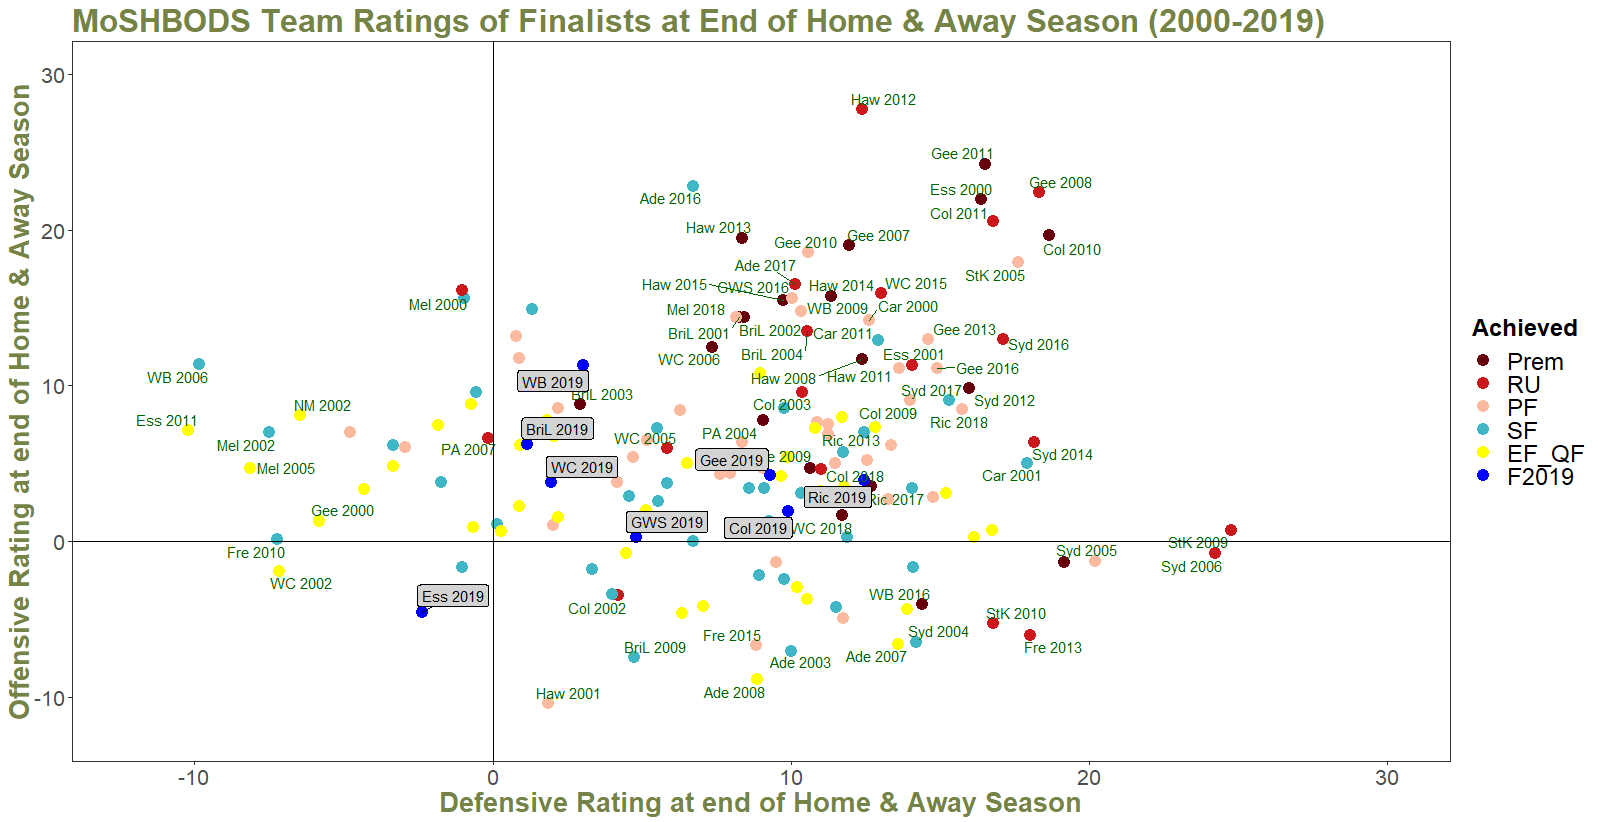 R23 - MoSHBODS Rating of All Finalists 2000 to 2019.png